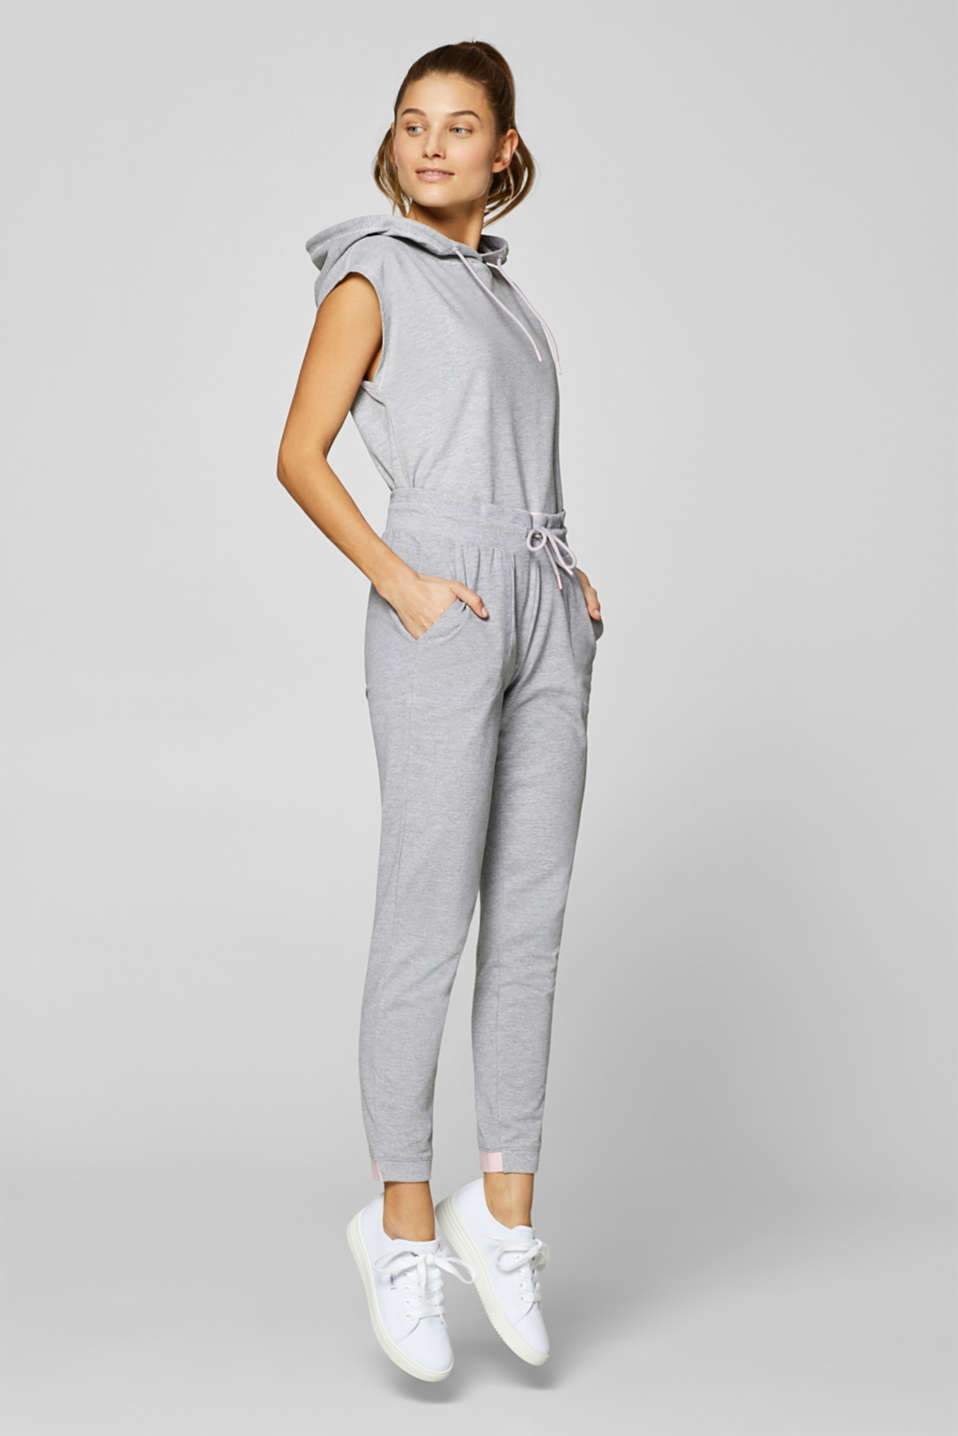 Esprit - Melange jersey trousers with contrast borders